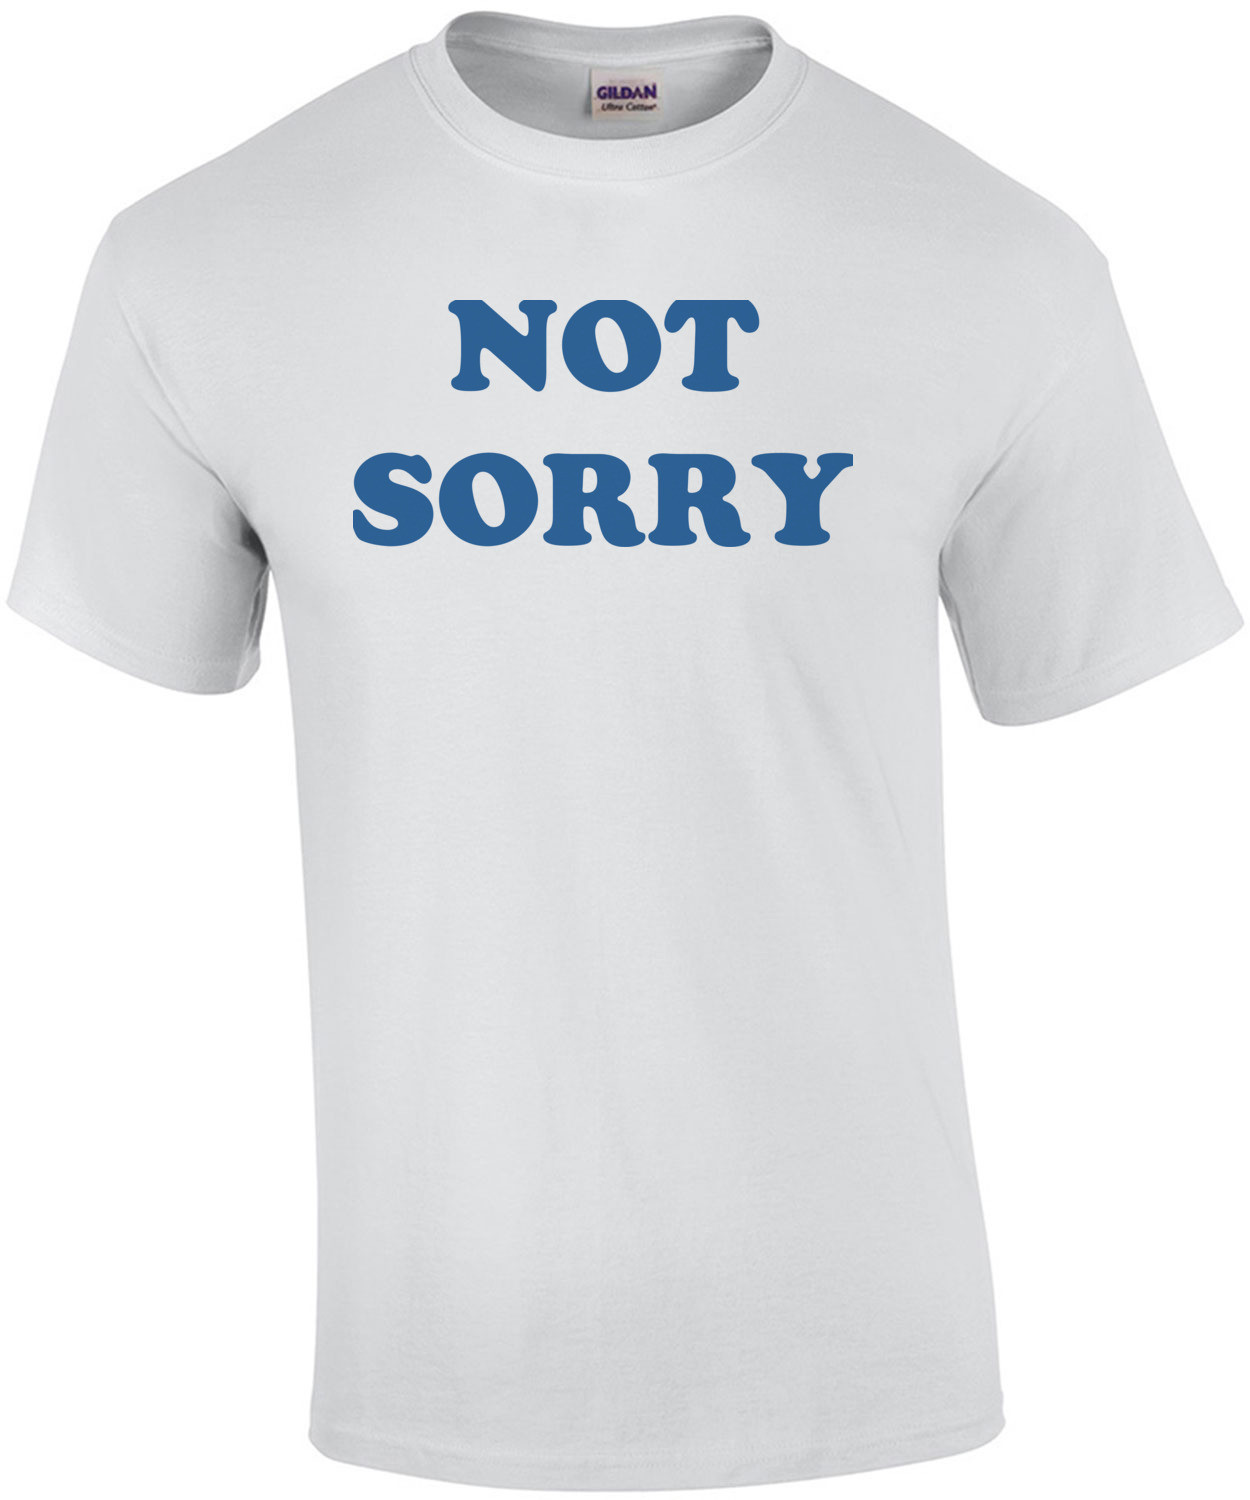 NOT SORRY Shirt